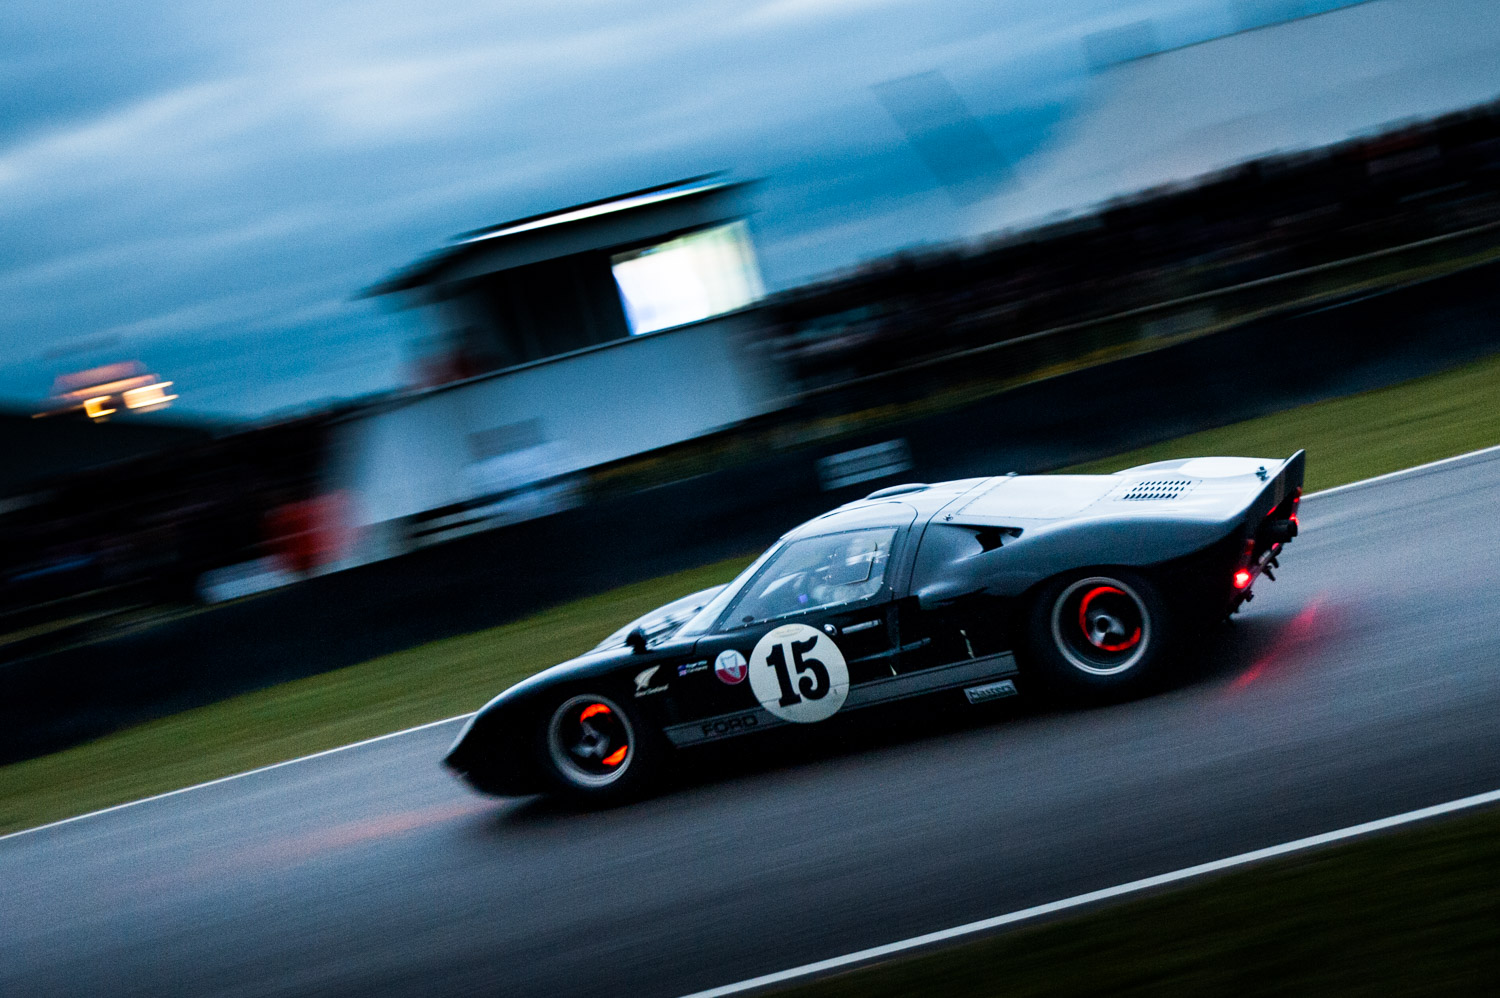 Jayson-Fong-Photography-Form-and-function-international-GT40-Goodwood.jpg